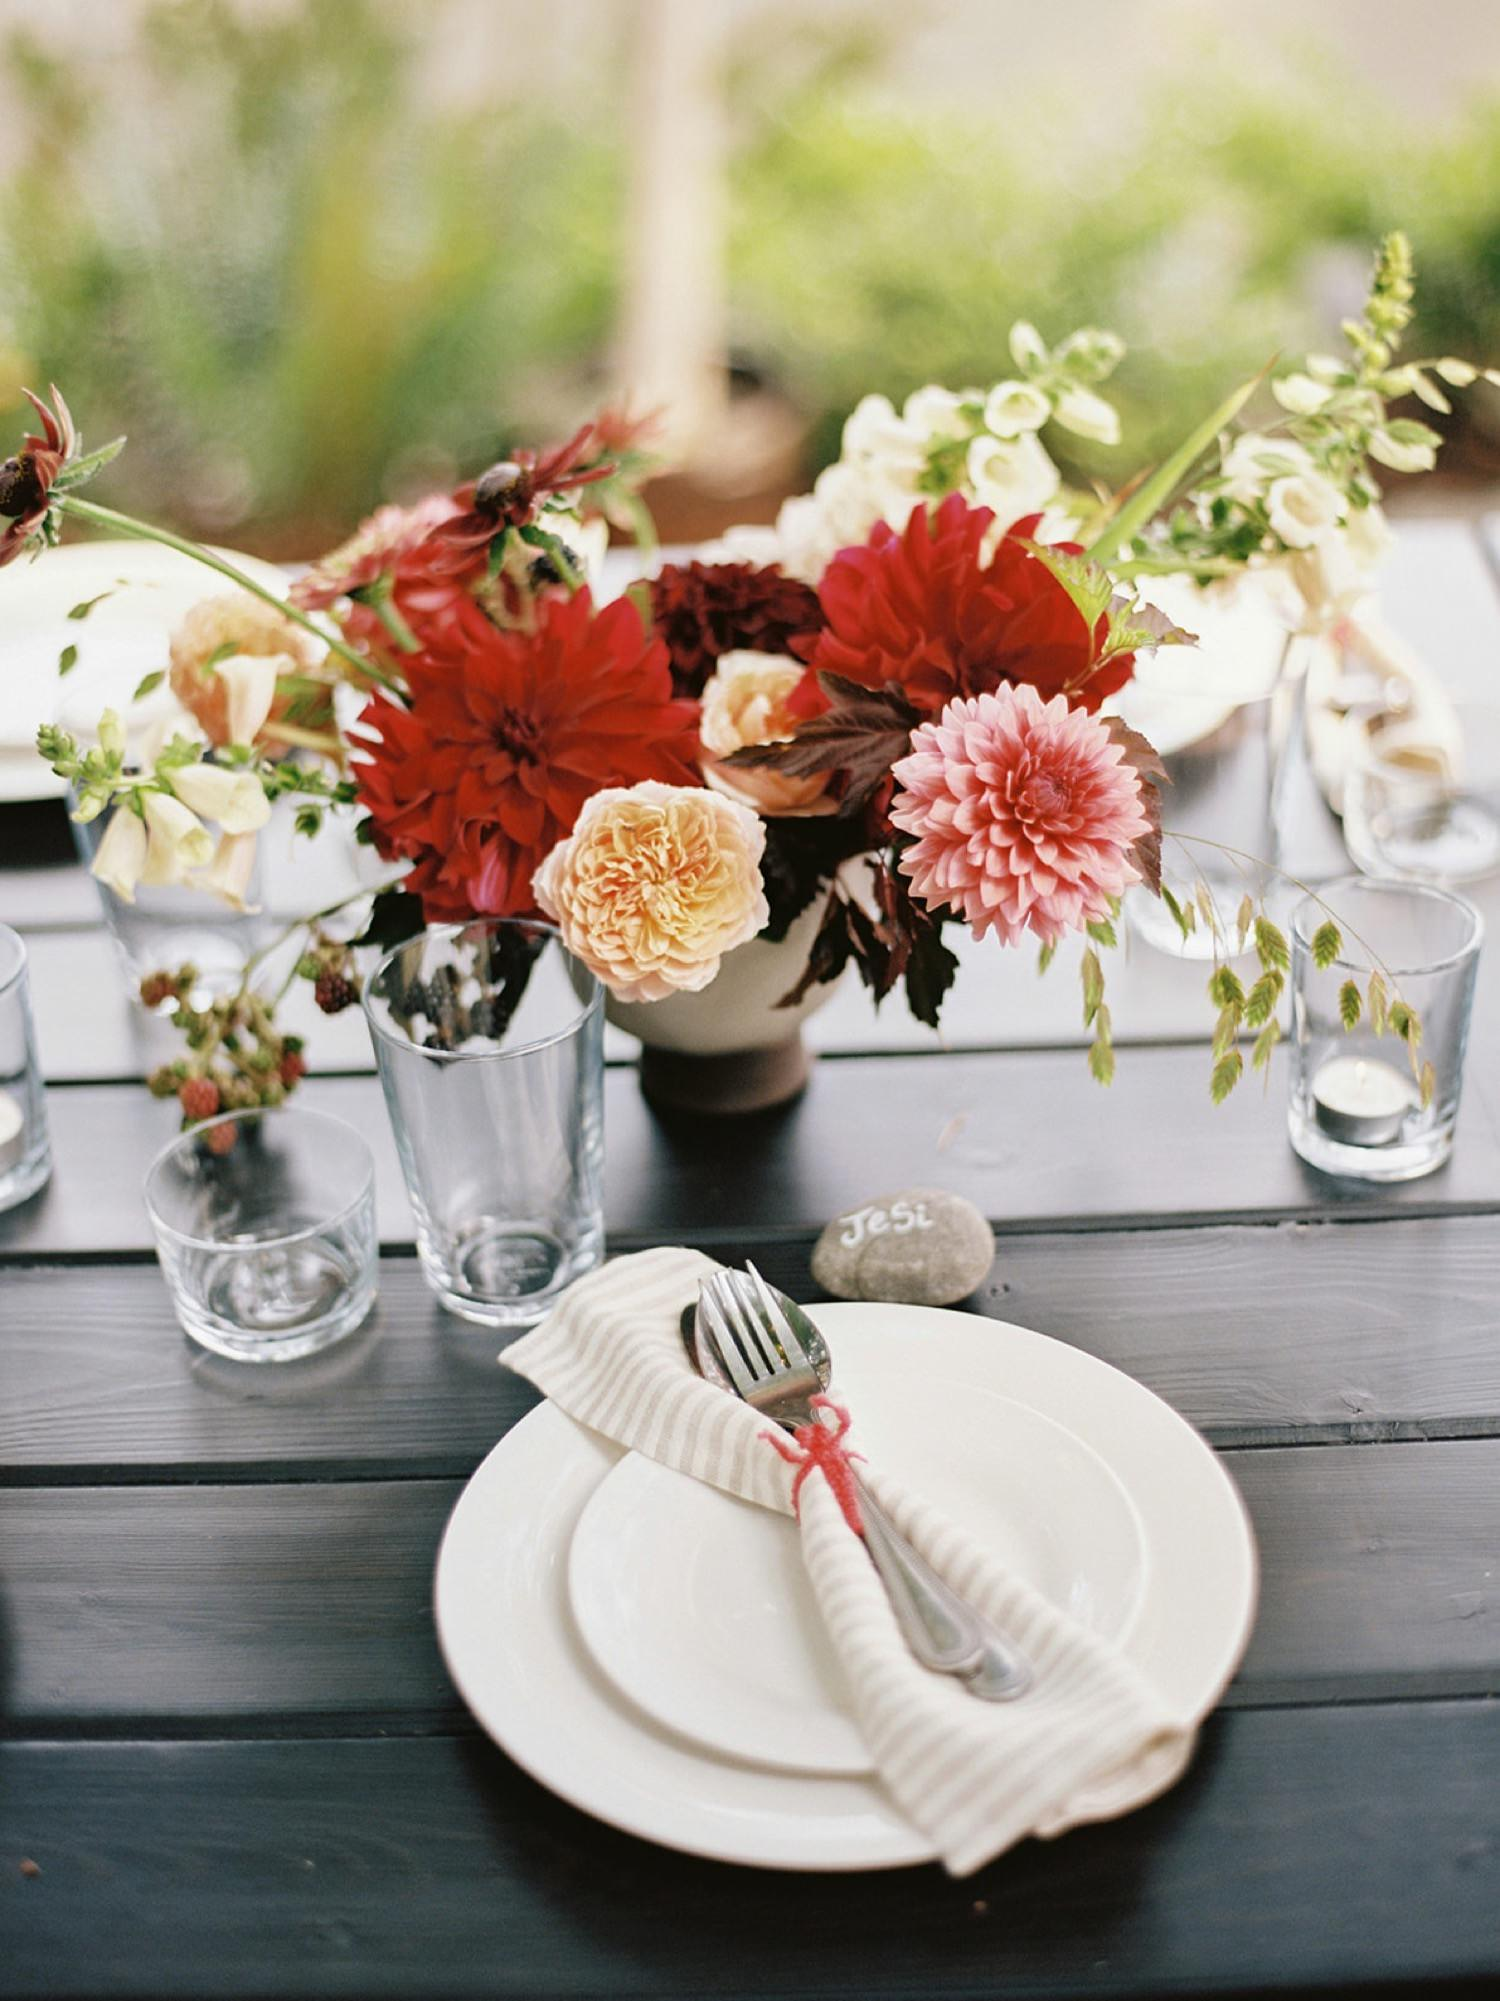 Colorful, simple table setting at a backyard wedding